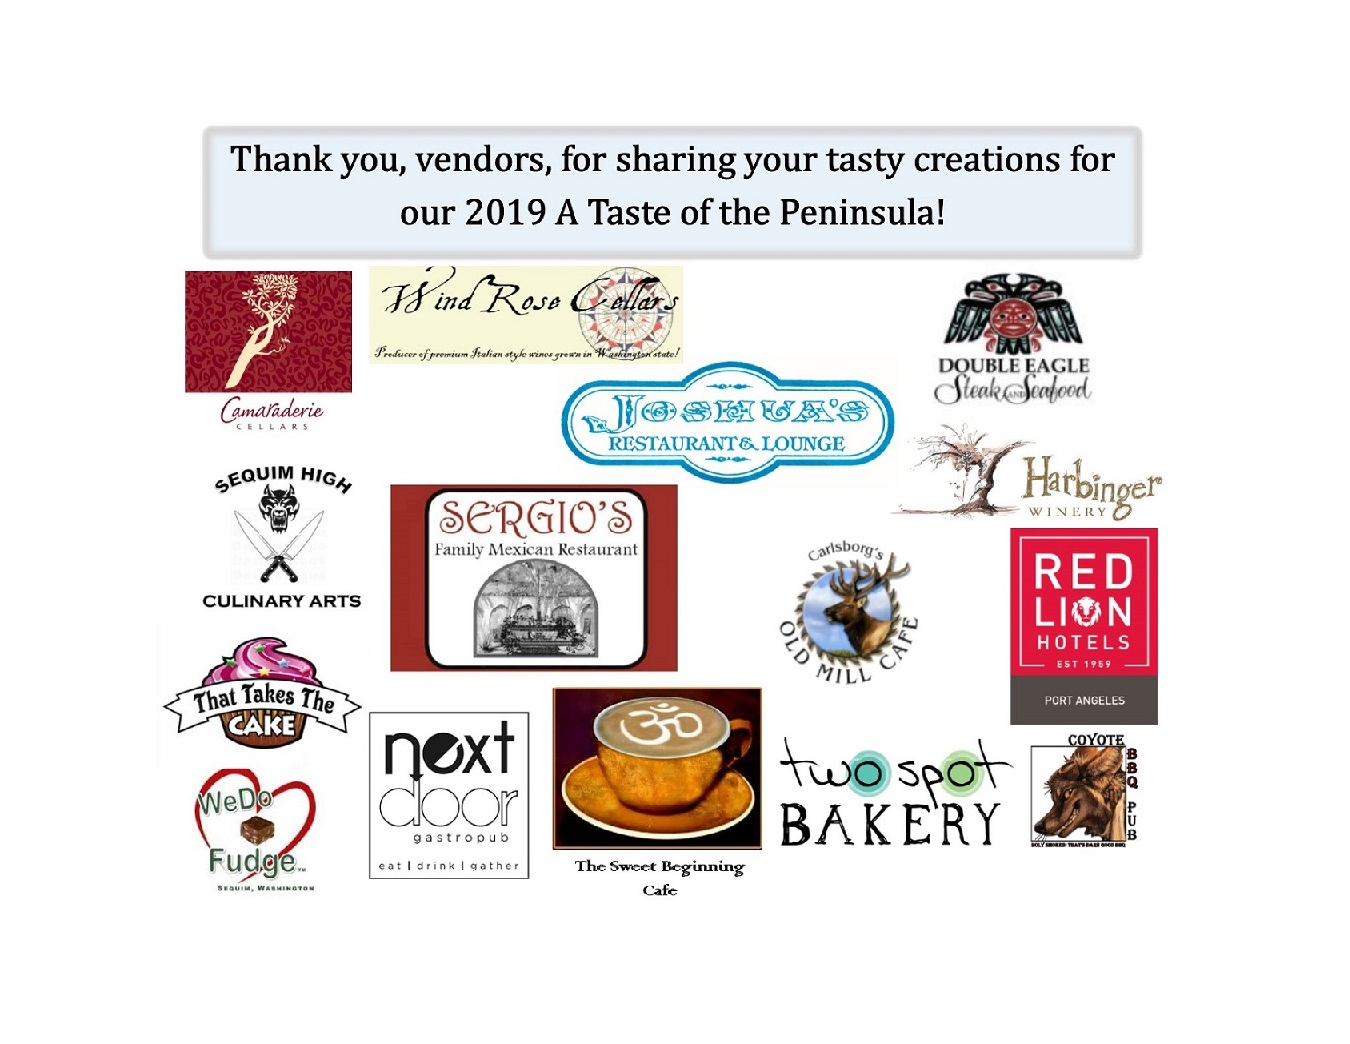 2019 A Taste of the Peninsula Food & Beverage Vendors